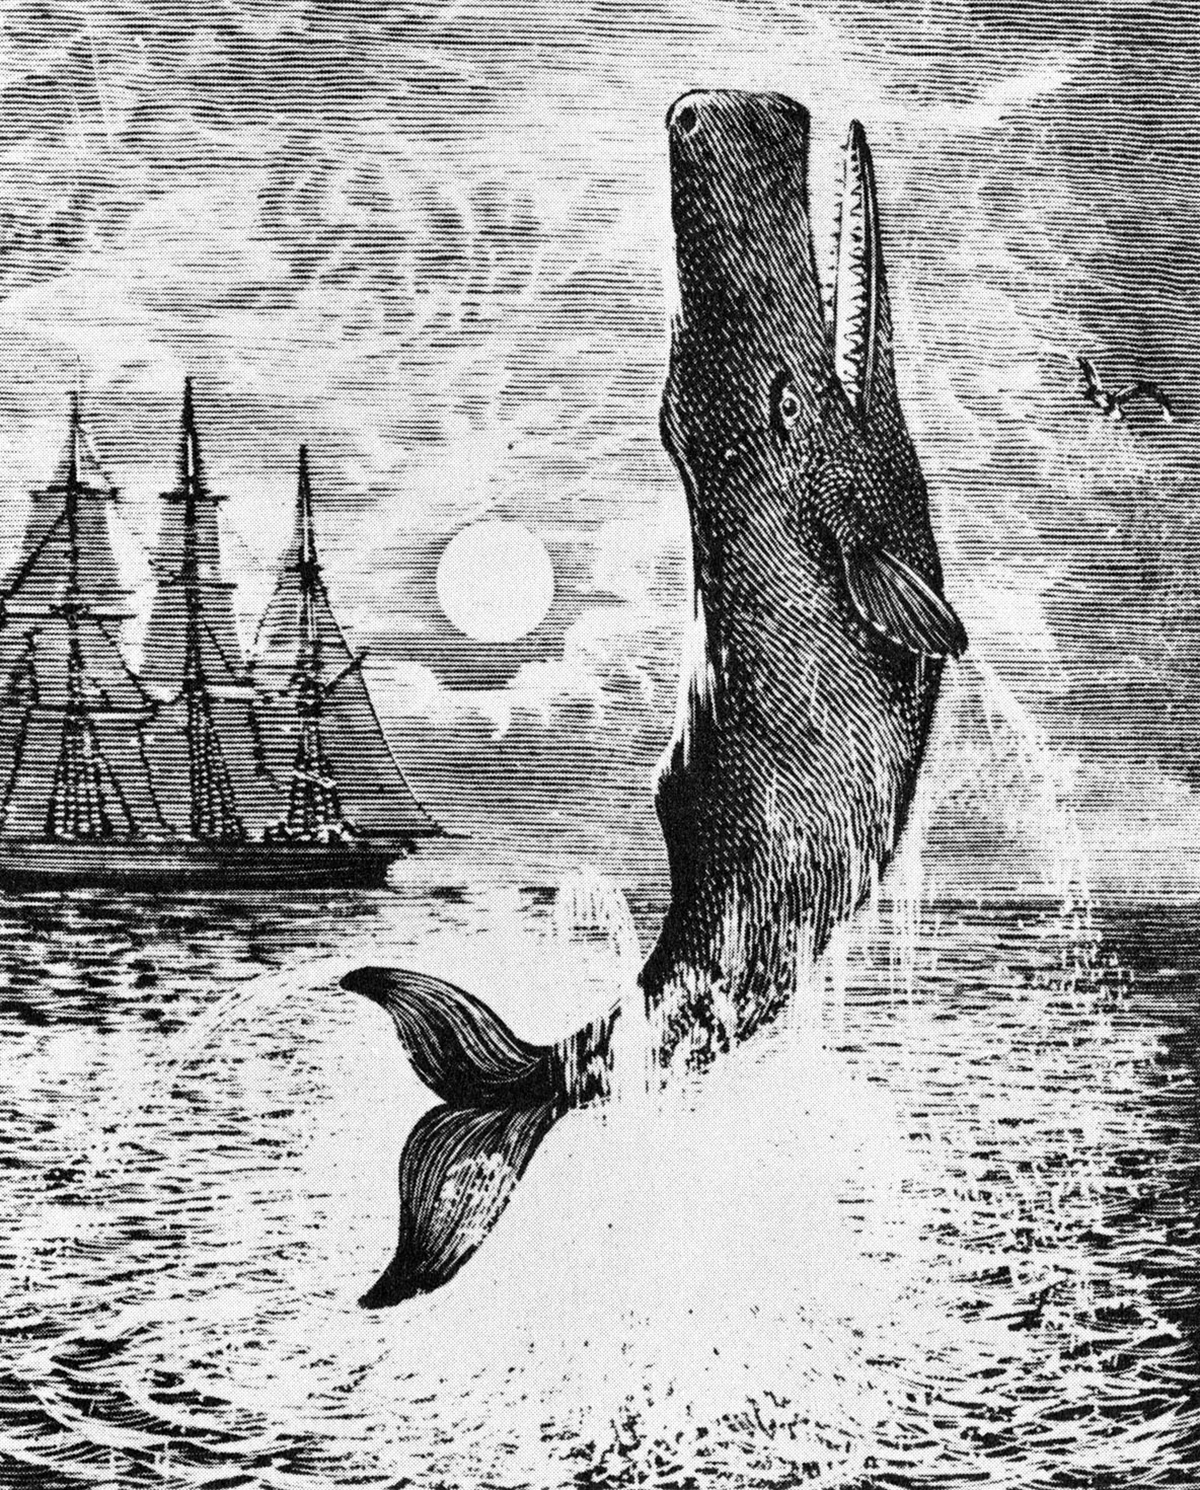 Illustration of Moby Dick from Herman Melville's novel 'Moby-Dick'.